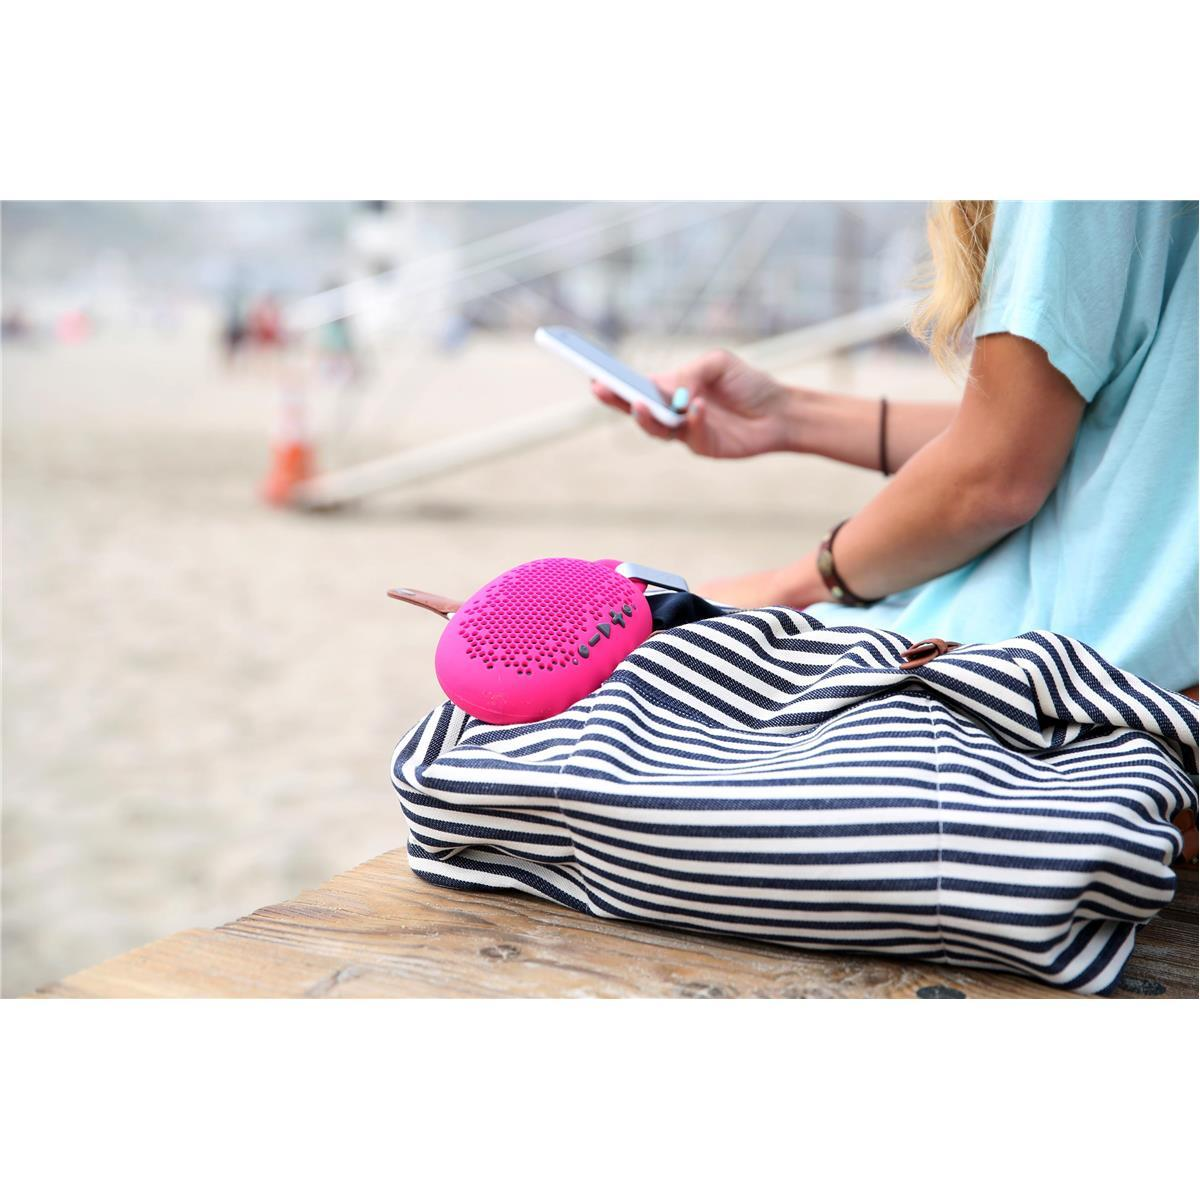 $39 BOOM Urchin Ready 4 Anything Water Resistant Bluetooth Speaker (Available in 4 colors)